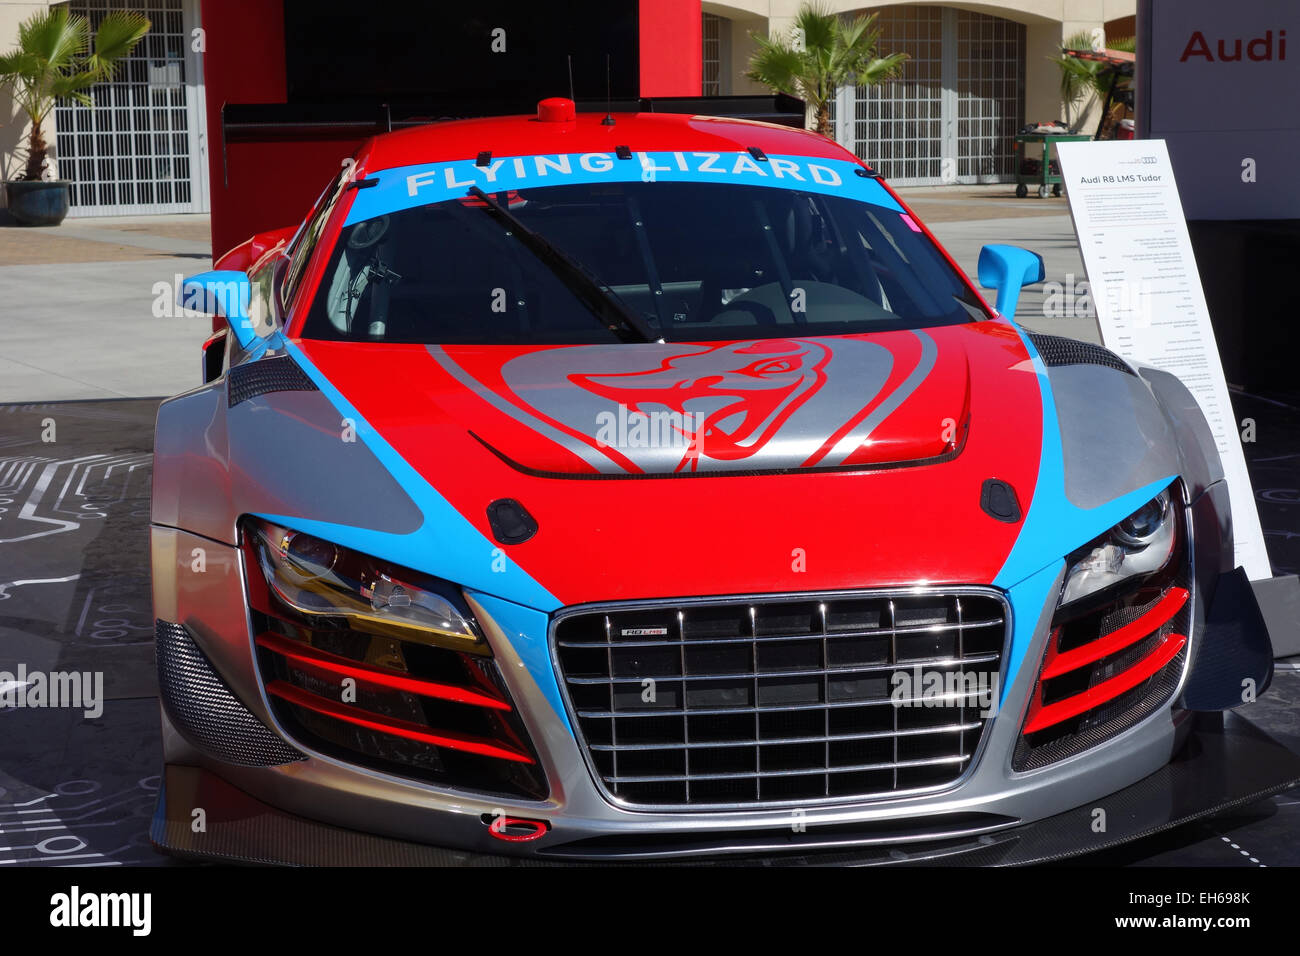 R8 LMS Tudor Known As The Flying Lizard Is A V10 Sports Car Made By Audi